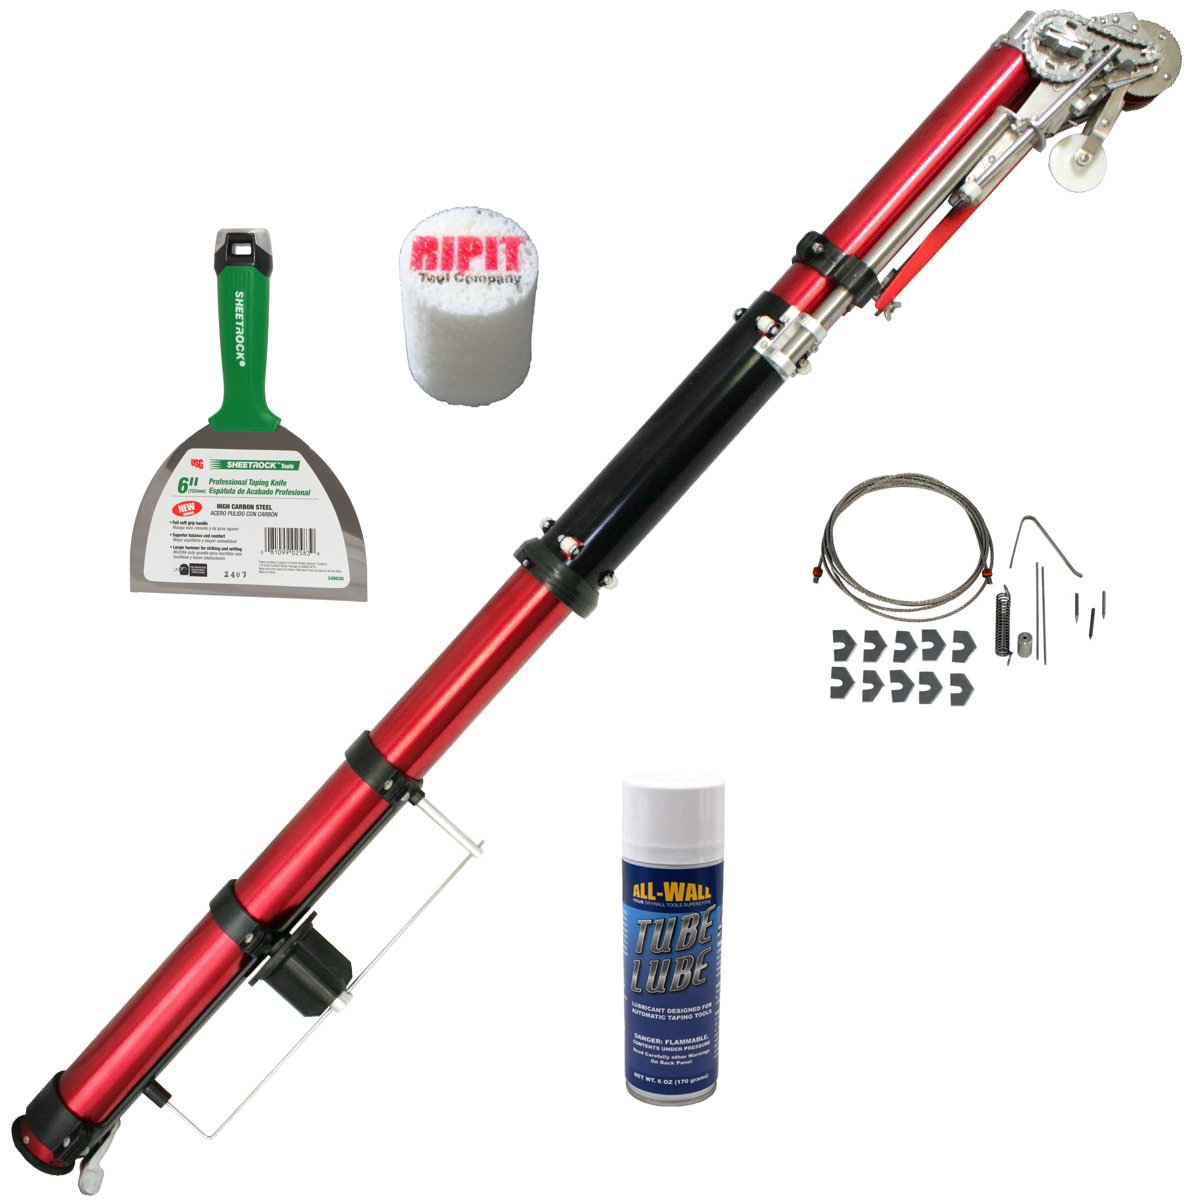 Level5 Automatic Taping Tool with FREE Accessory Kit and Joint Knife